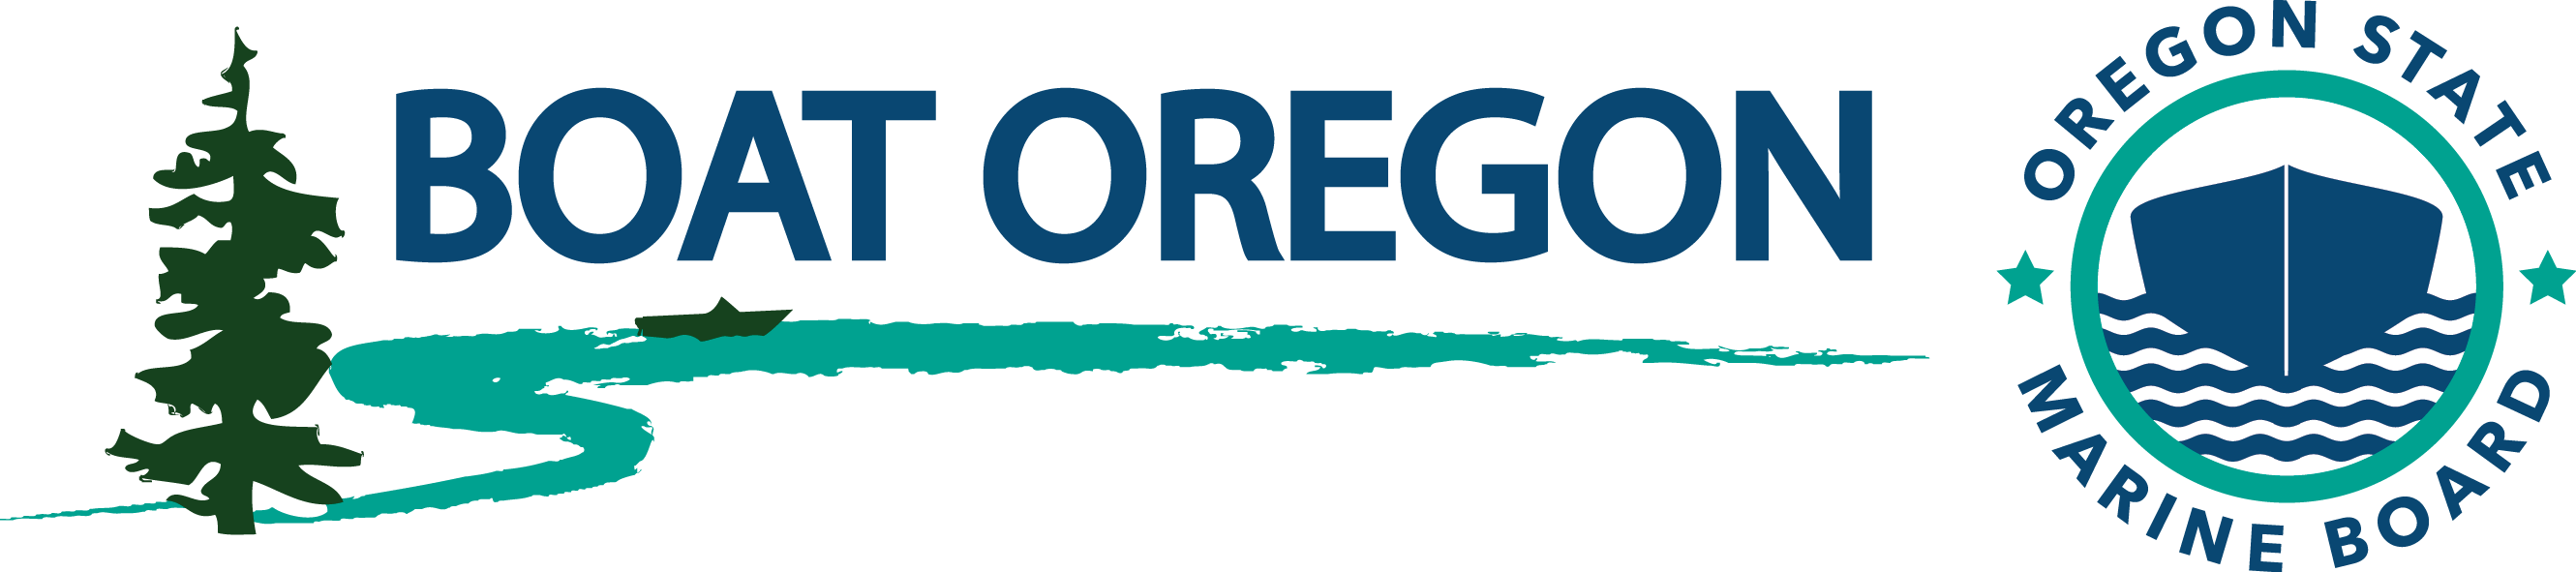 Boat Oregon logo